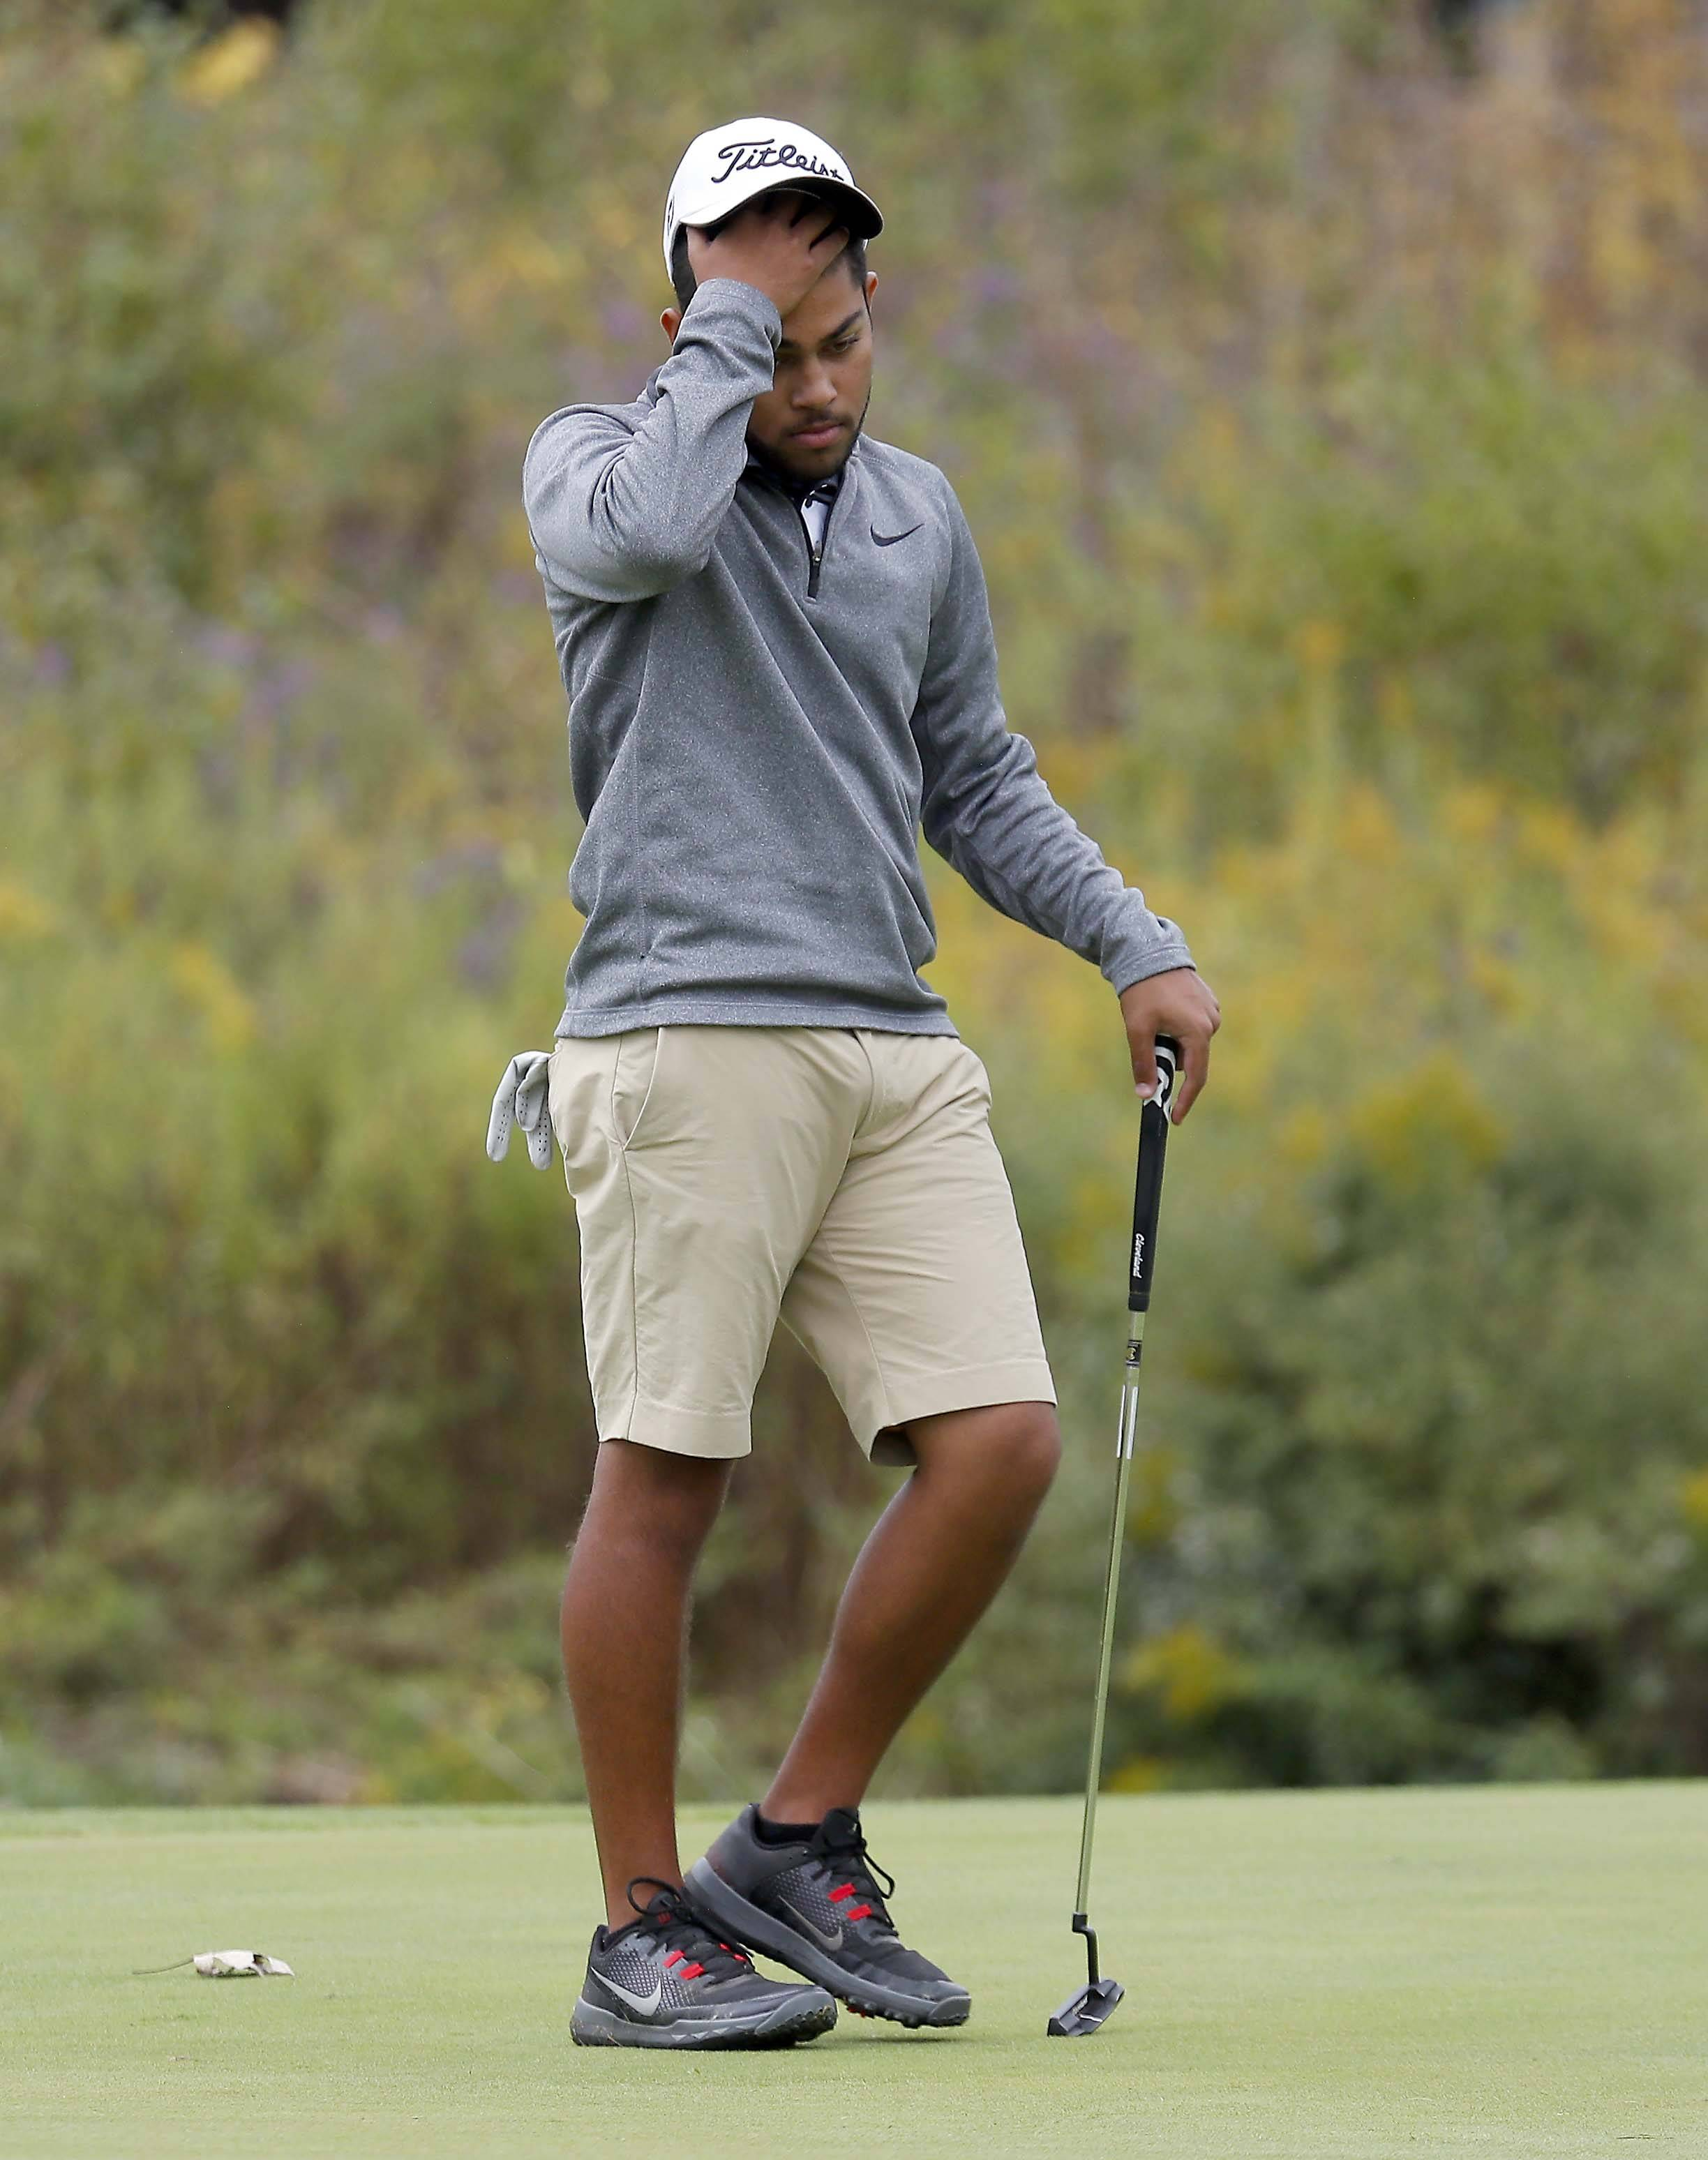 South Elgin's Nathan Mehta reacts to his putt on the 8th green Tuesday during the Geneva boys golf regional at Mill Creek Golf Club.